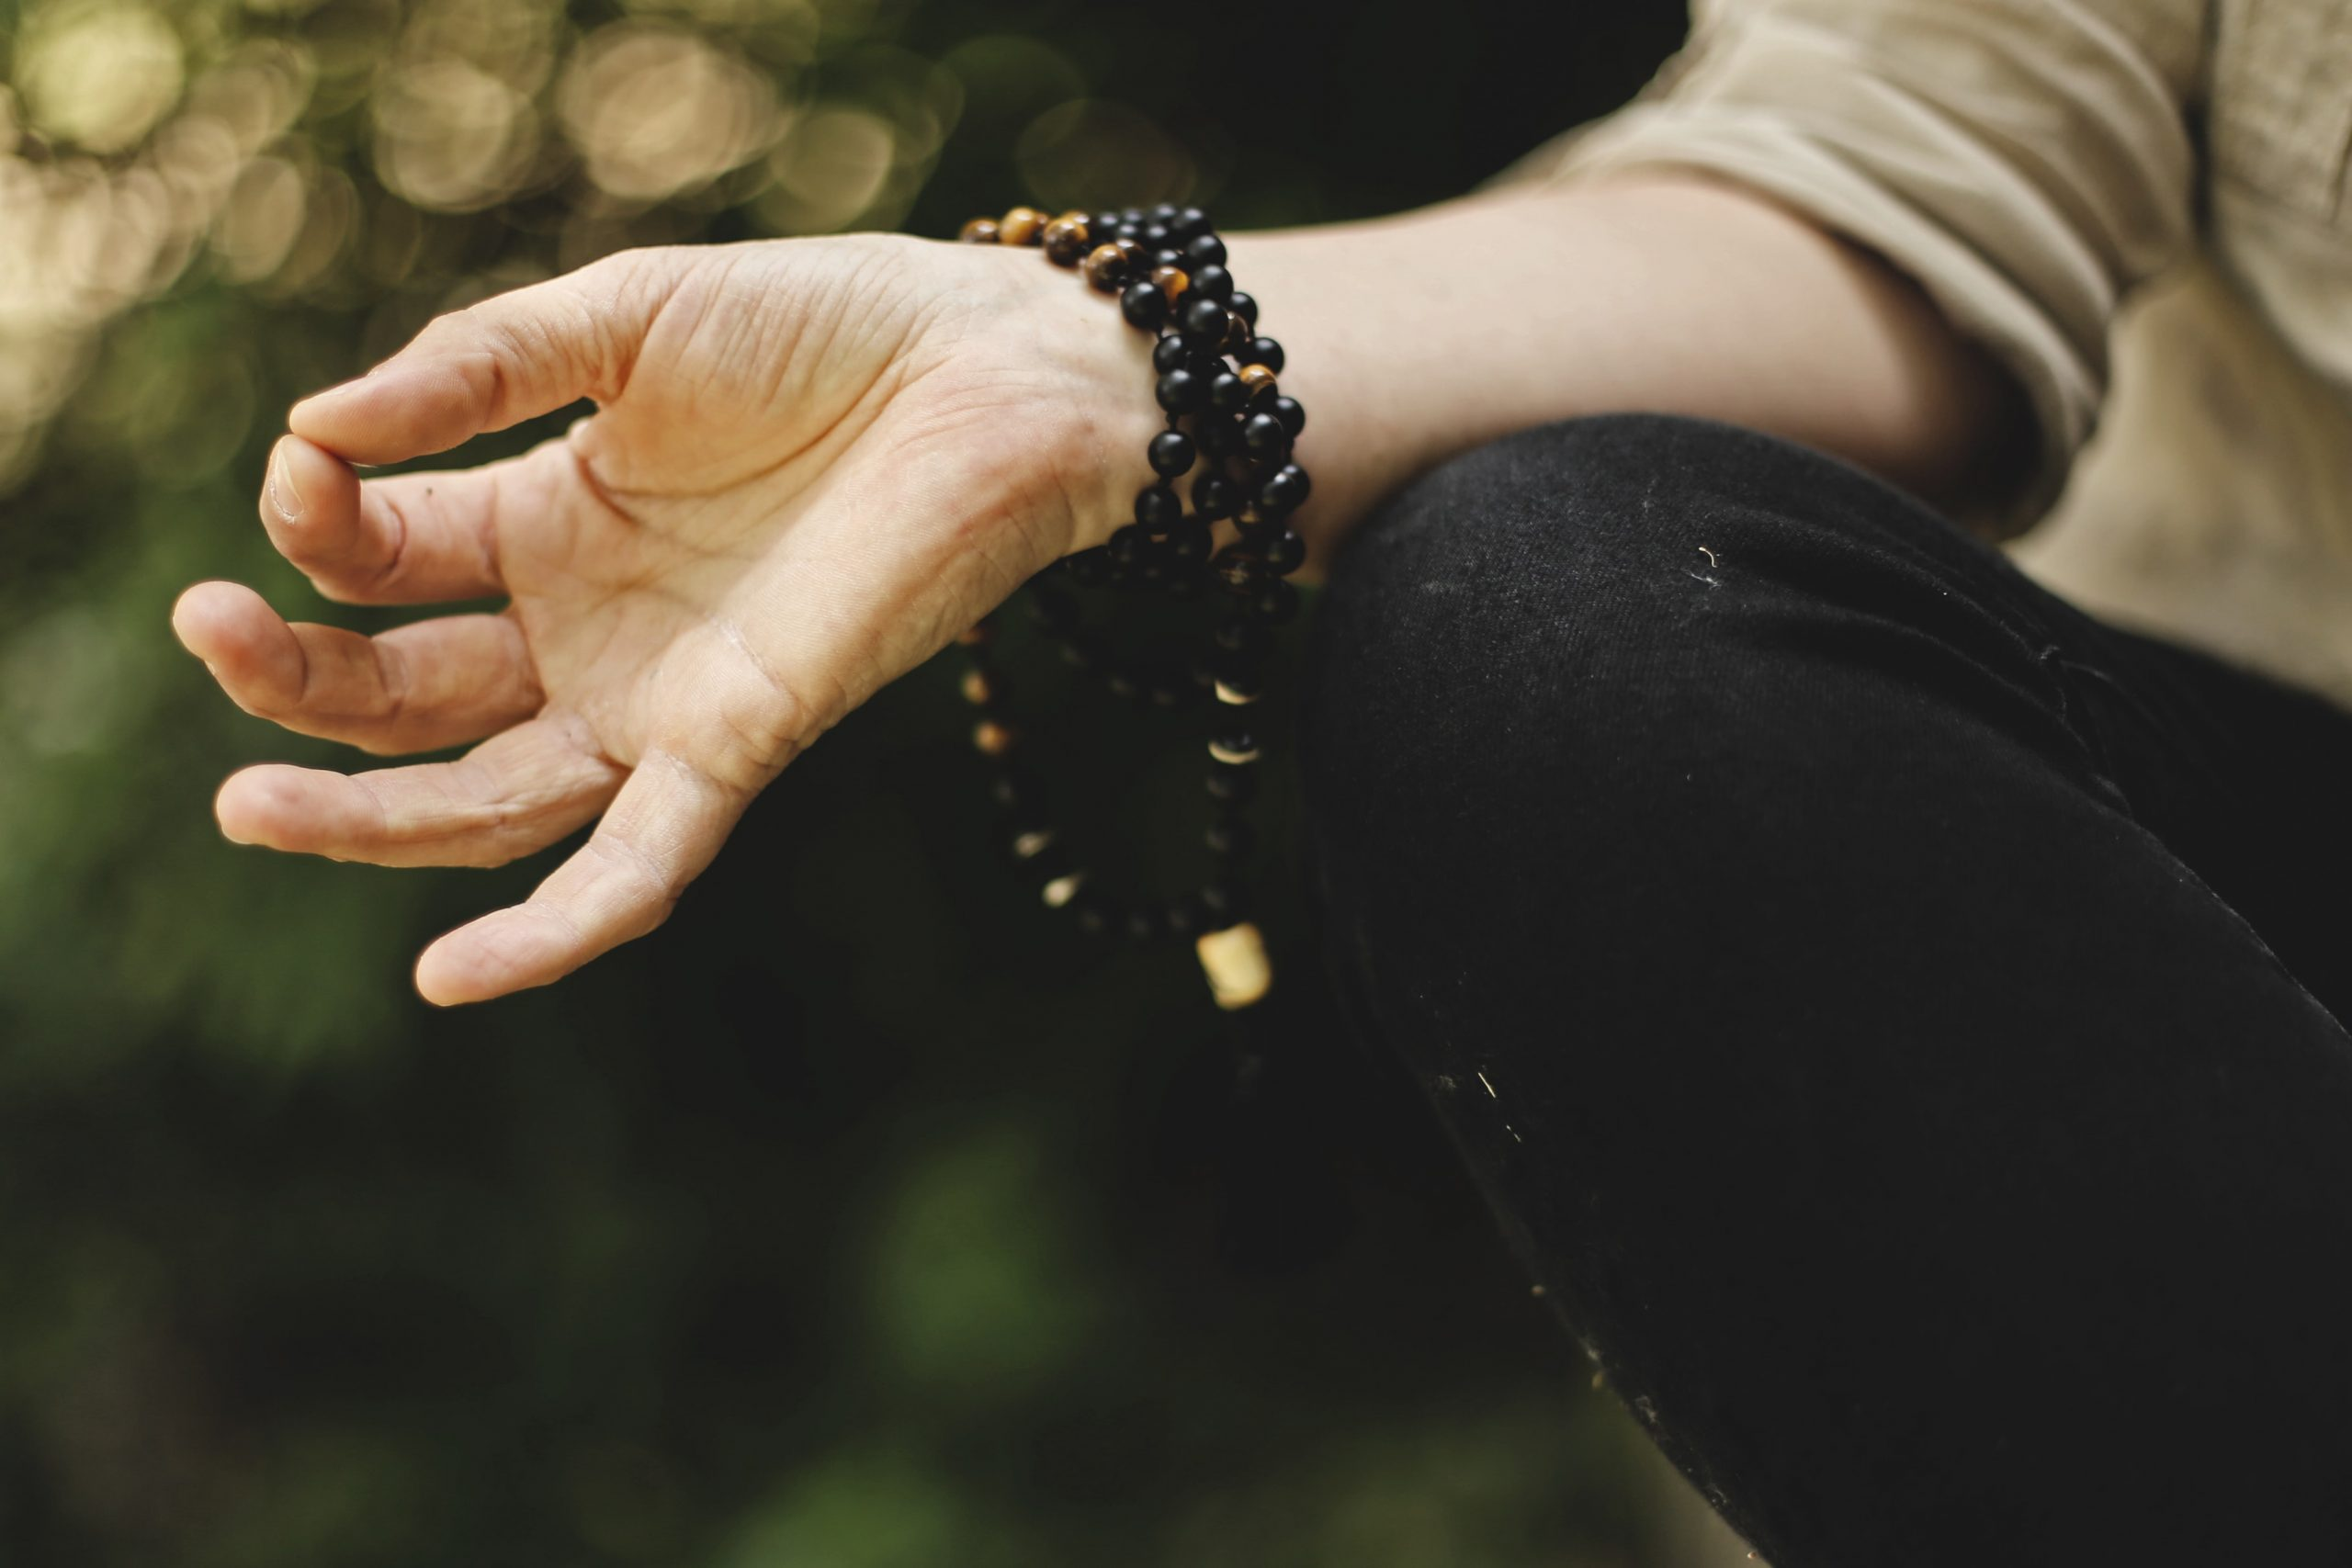 Hand with a brown beaded bracelet in meditative position.